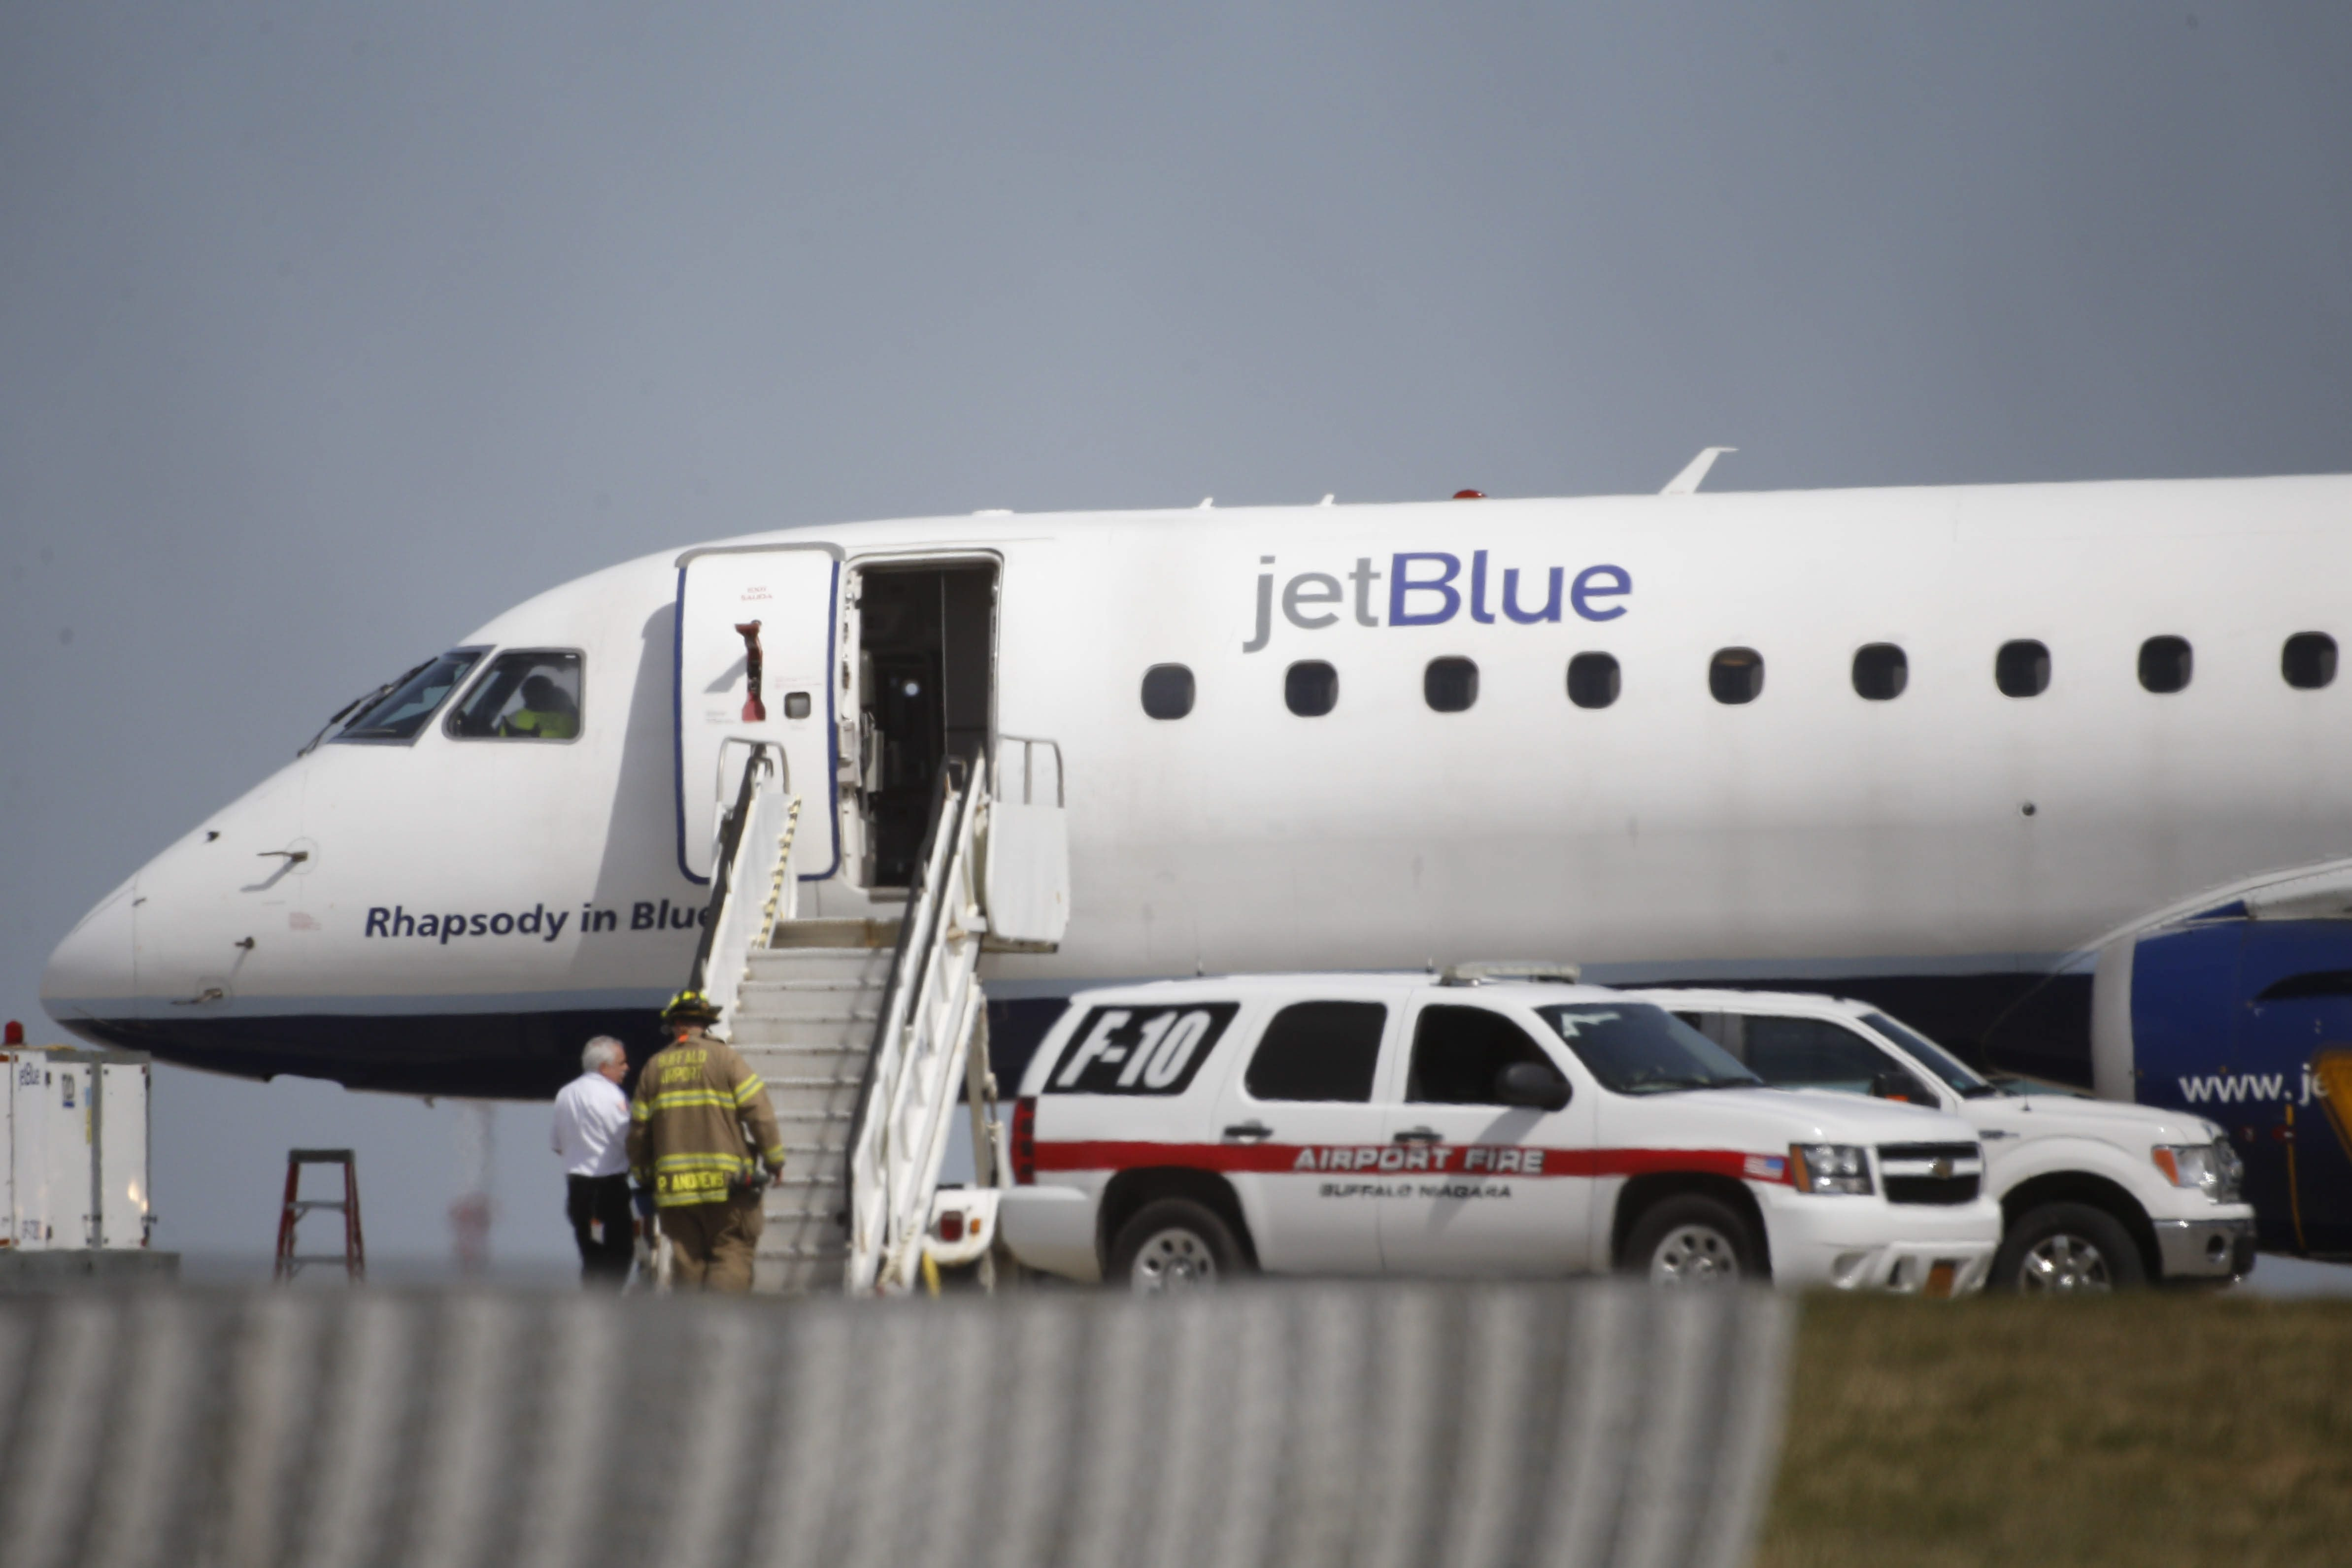 A JetBlue aircraft was diverted to land at Buffalo Niagara International Airport following an odor of smoke in the cockpit on Wednesday, March 30, 2016. (Derek Gee/Buffalo News)